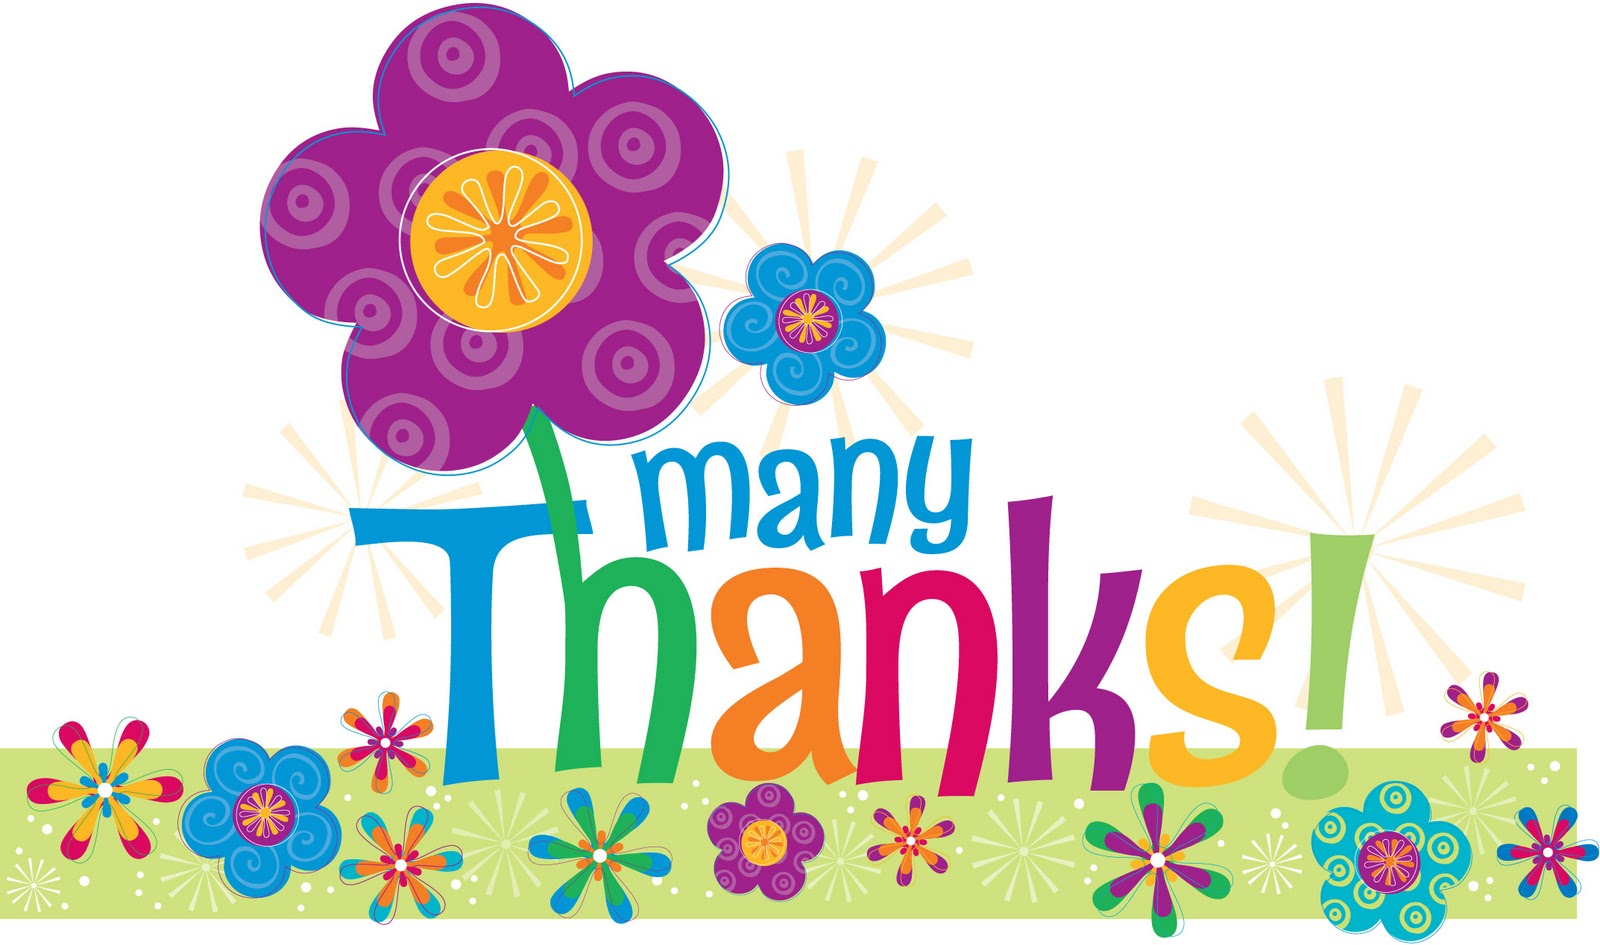 Thank you clipart 4-Thank you clipart 4-9